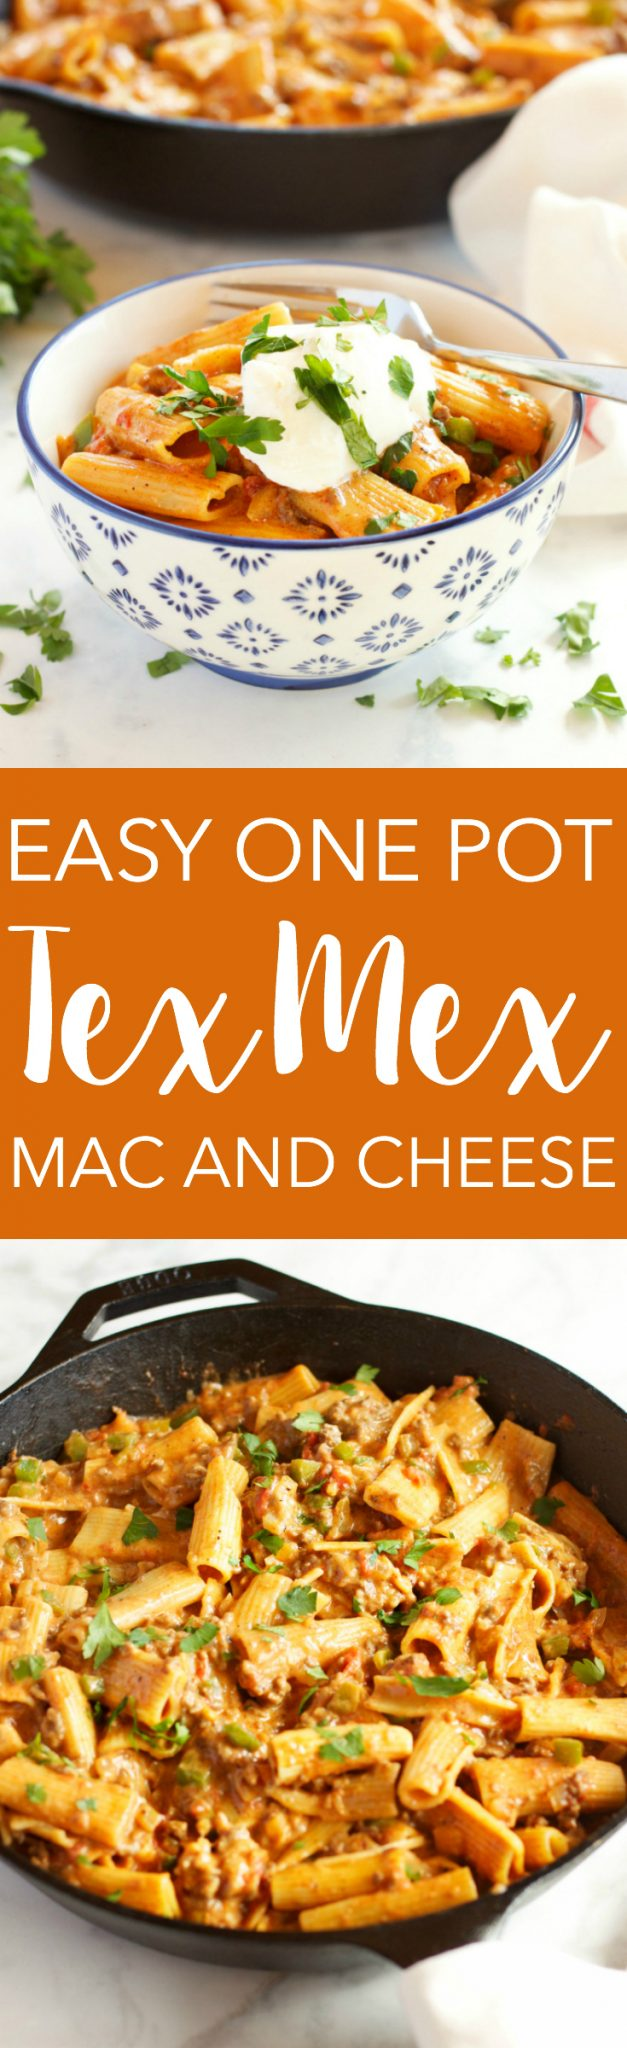 tex-mex-mac-and-cheese-pinterest - The Busy Baker